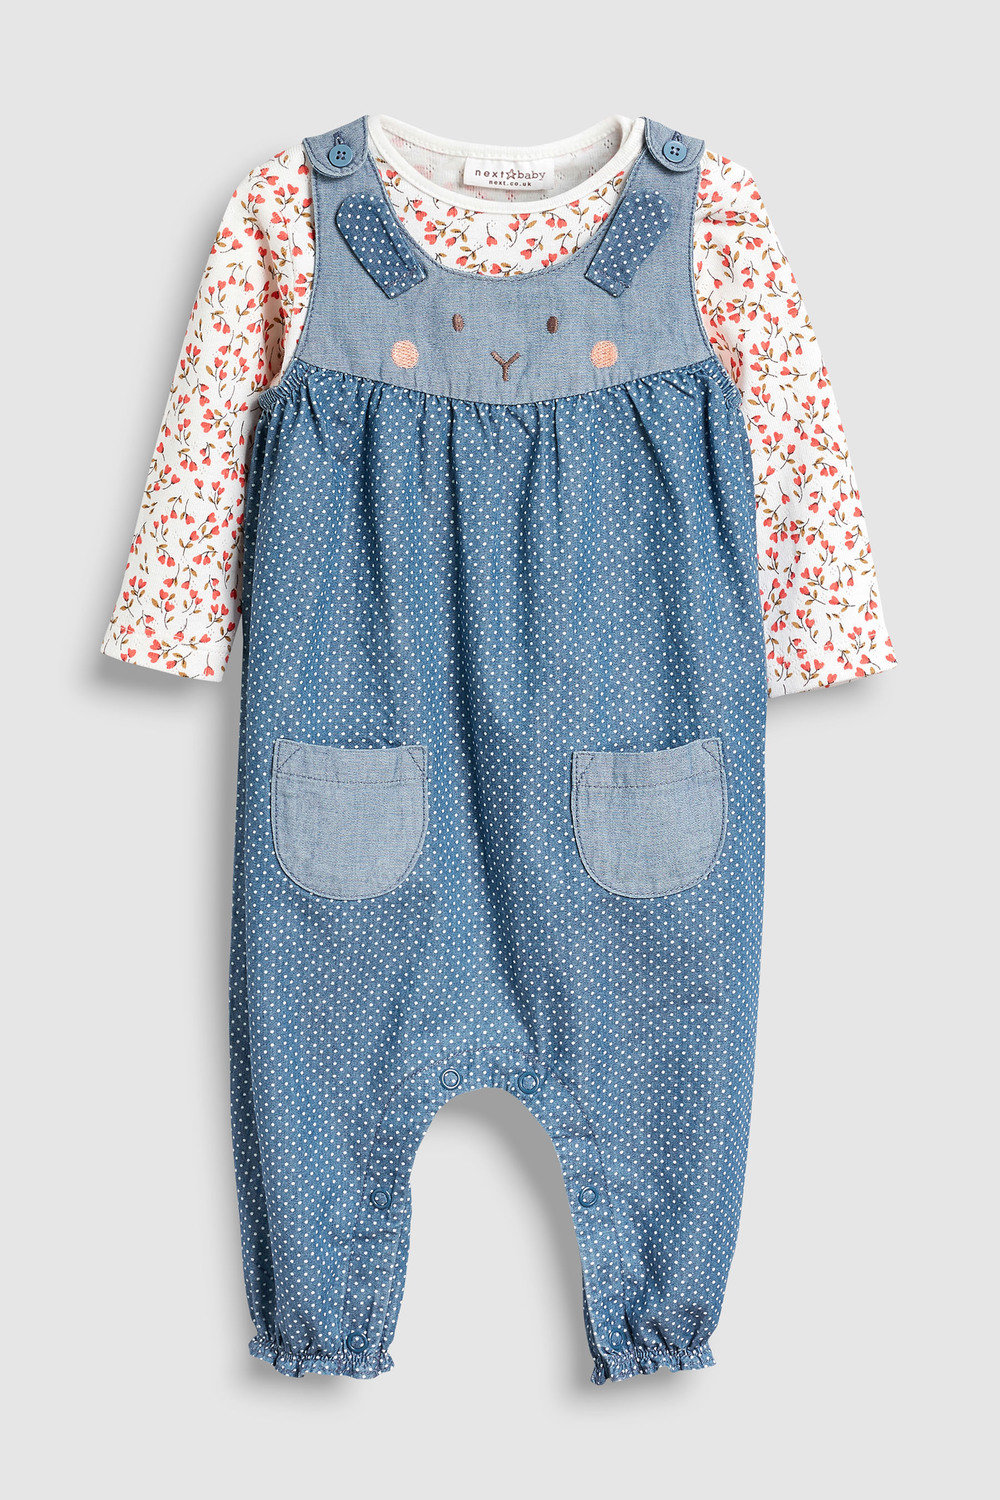 94c726c63 Next Character Dungarees And Bodysuit Set (0mths-2yrs) Online